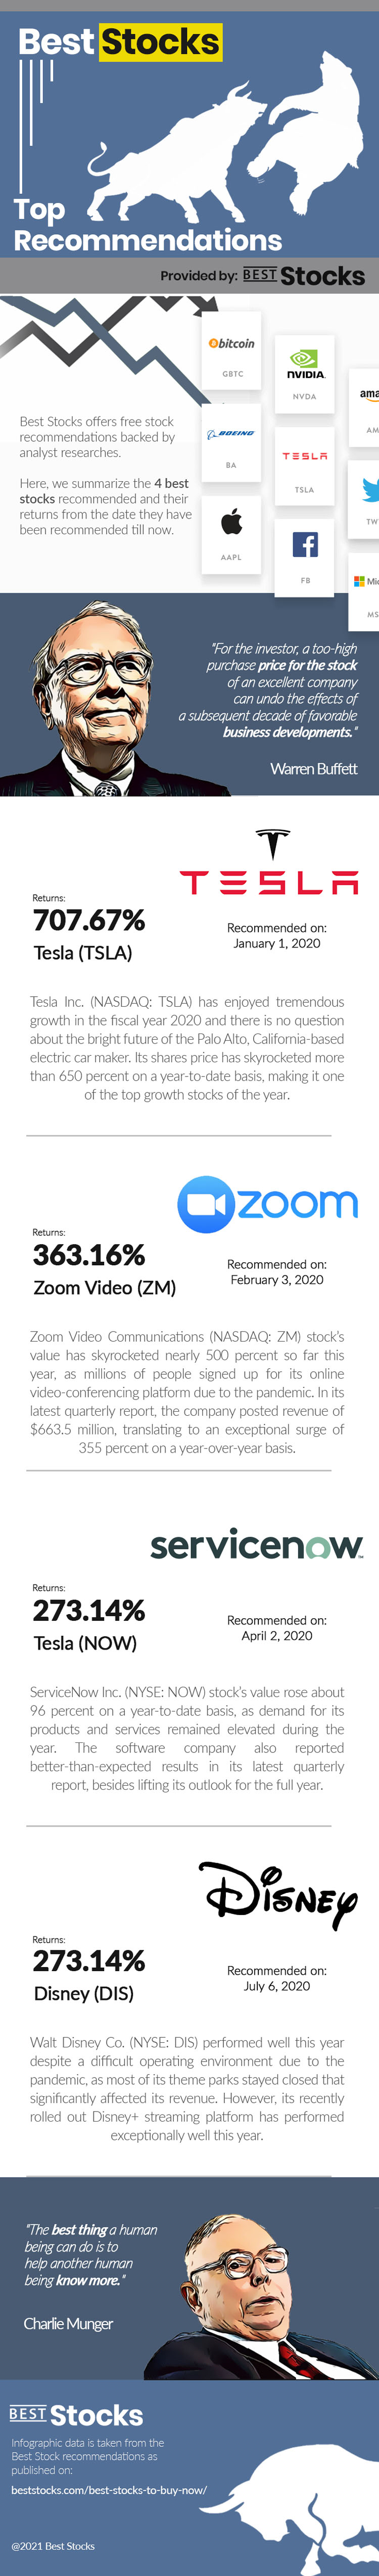 Best Stocks in 2021: Stocks and Opportunities [Infographic]